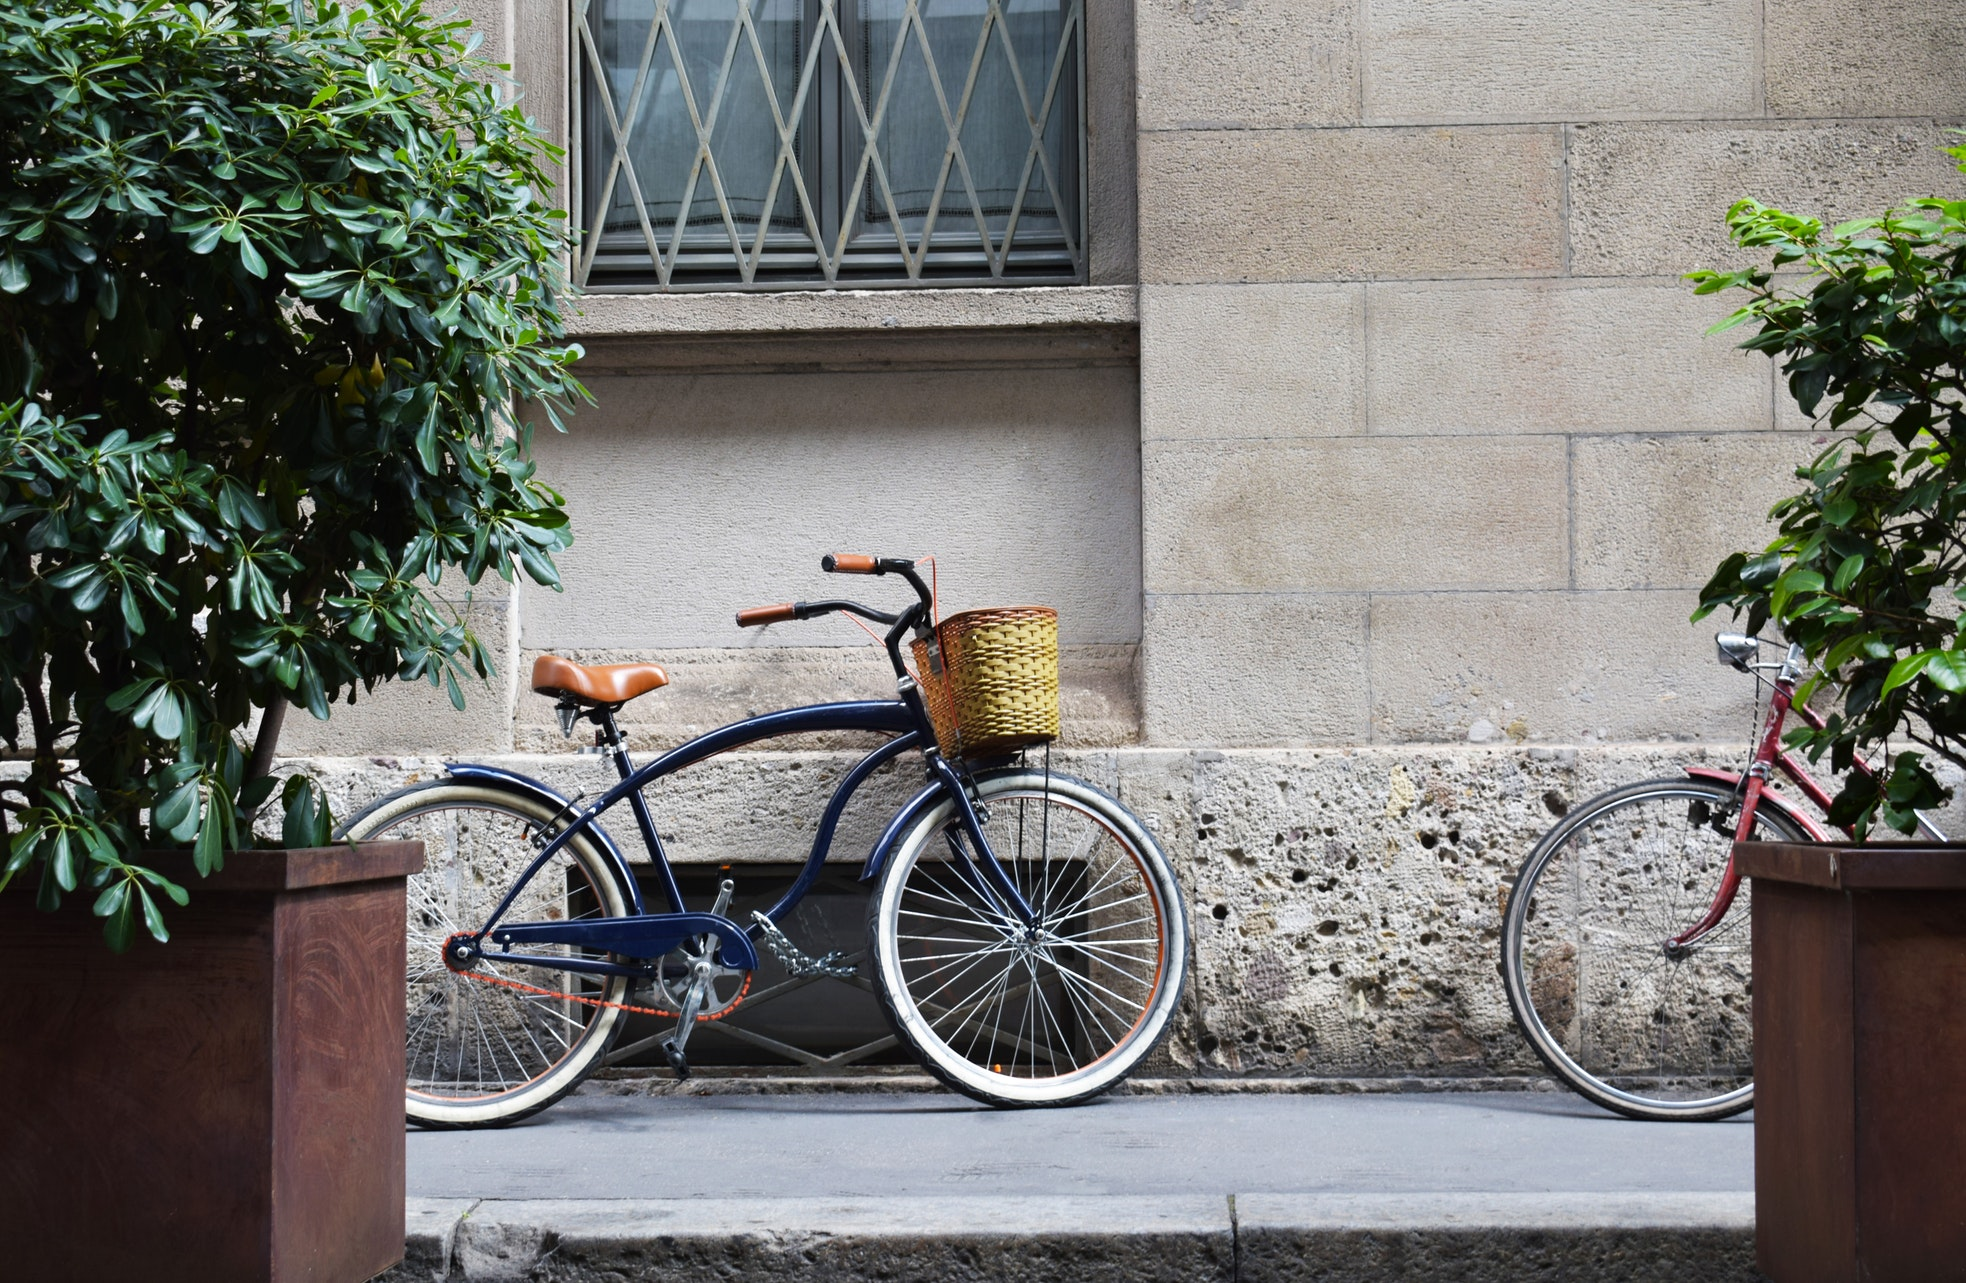 A bike in an urban environment. The Morning Walk Paris guided tours